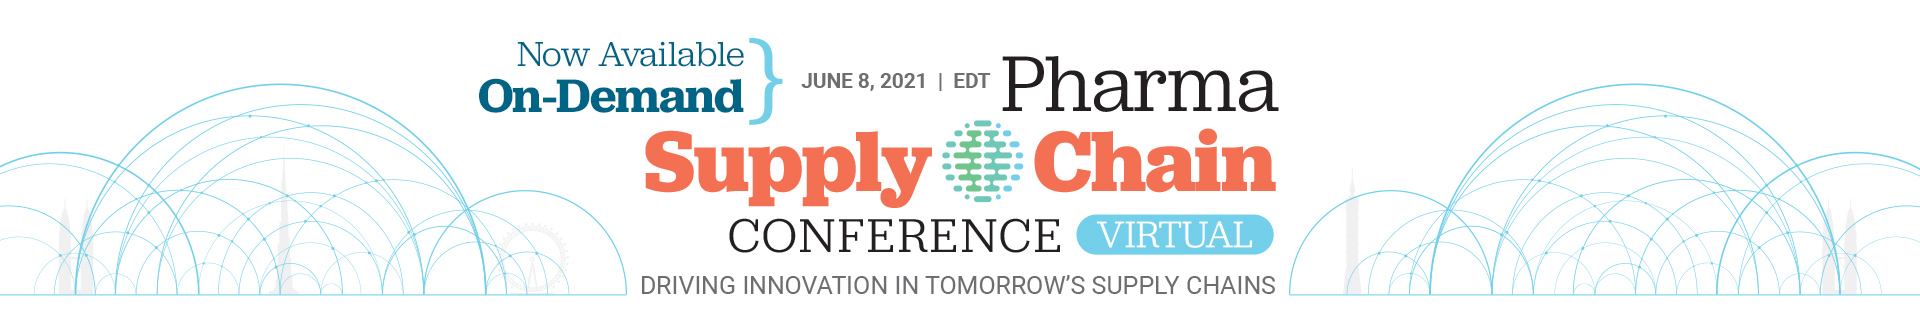 Pharma Supply Chain Conference Image Banner